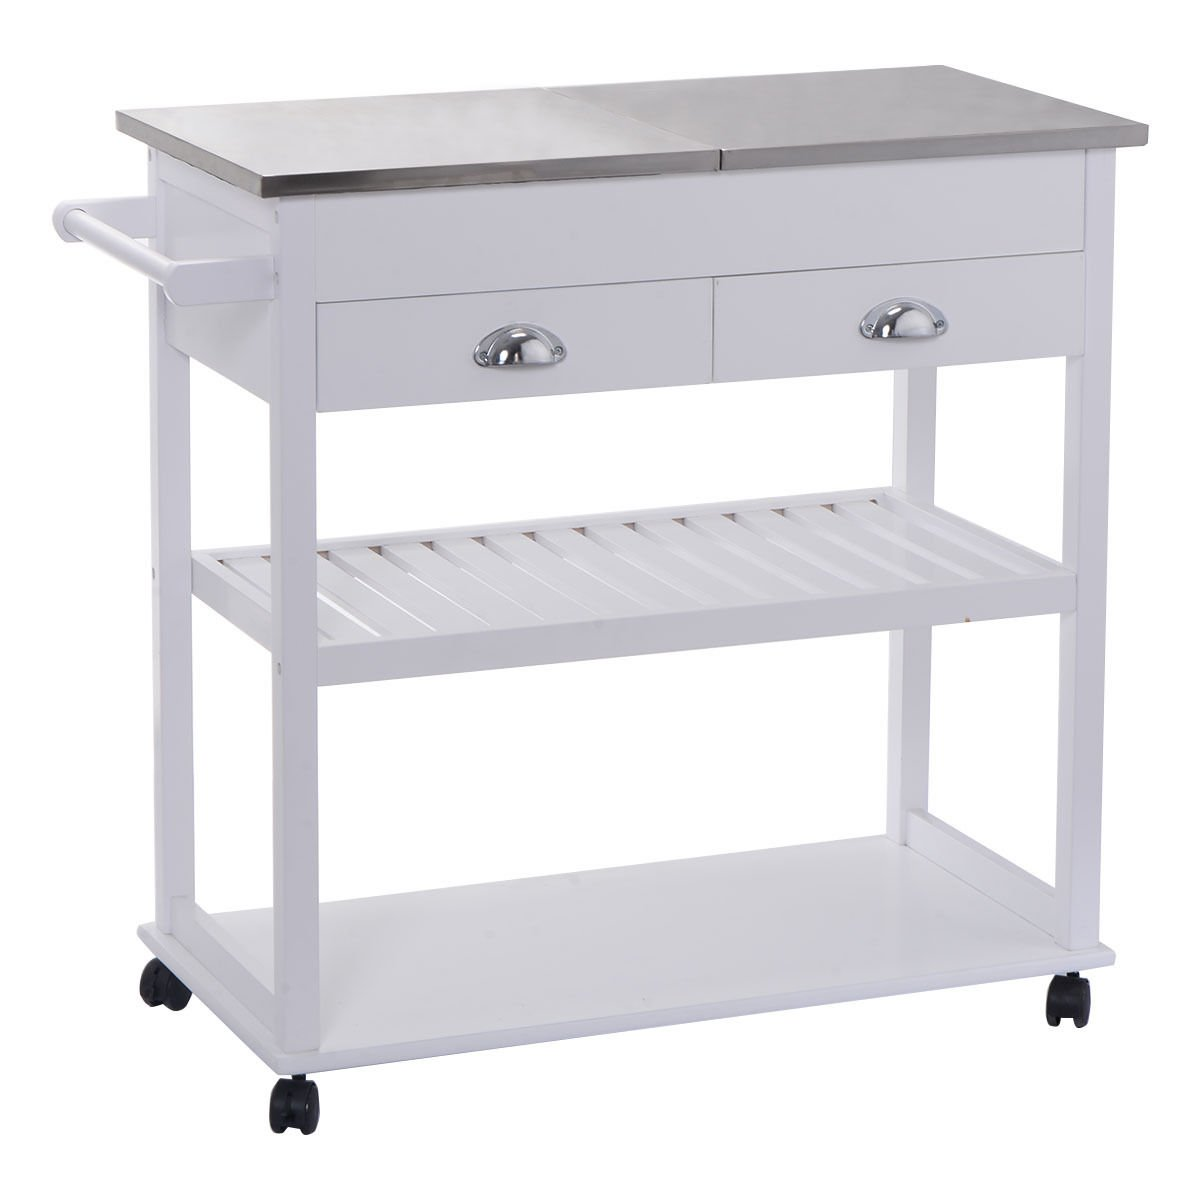 Amazon.com: Giantex White Rolling Kitchen Trolley Cart Stainless ...